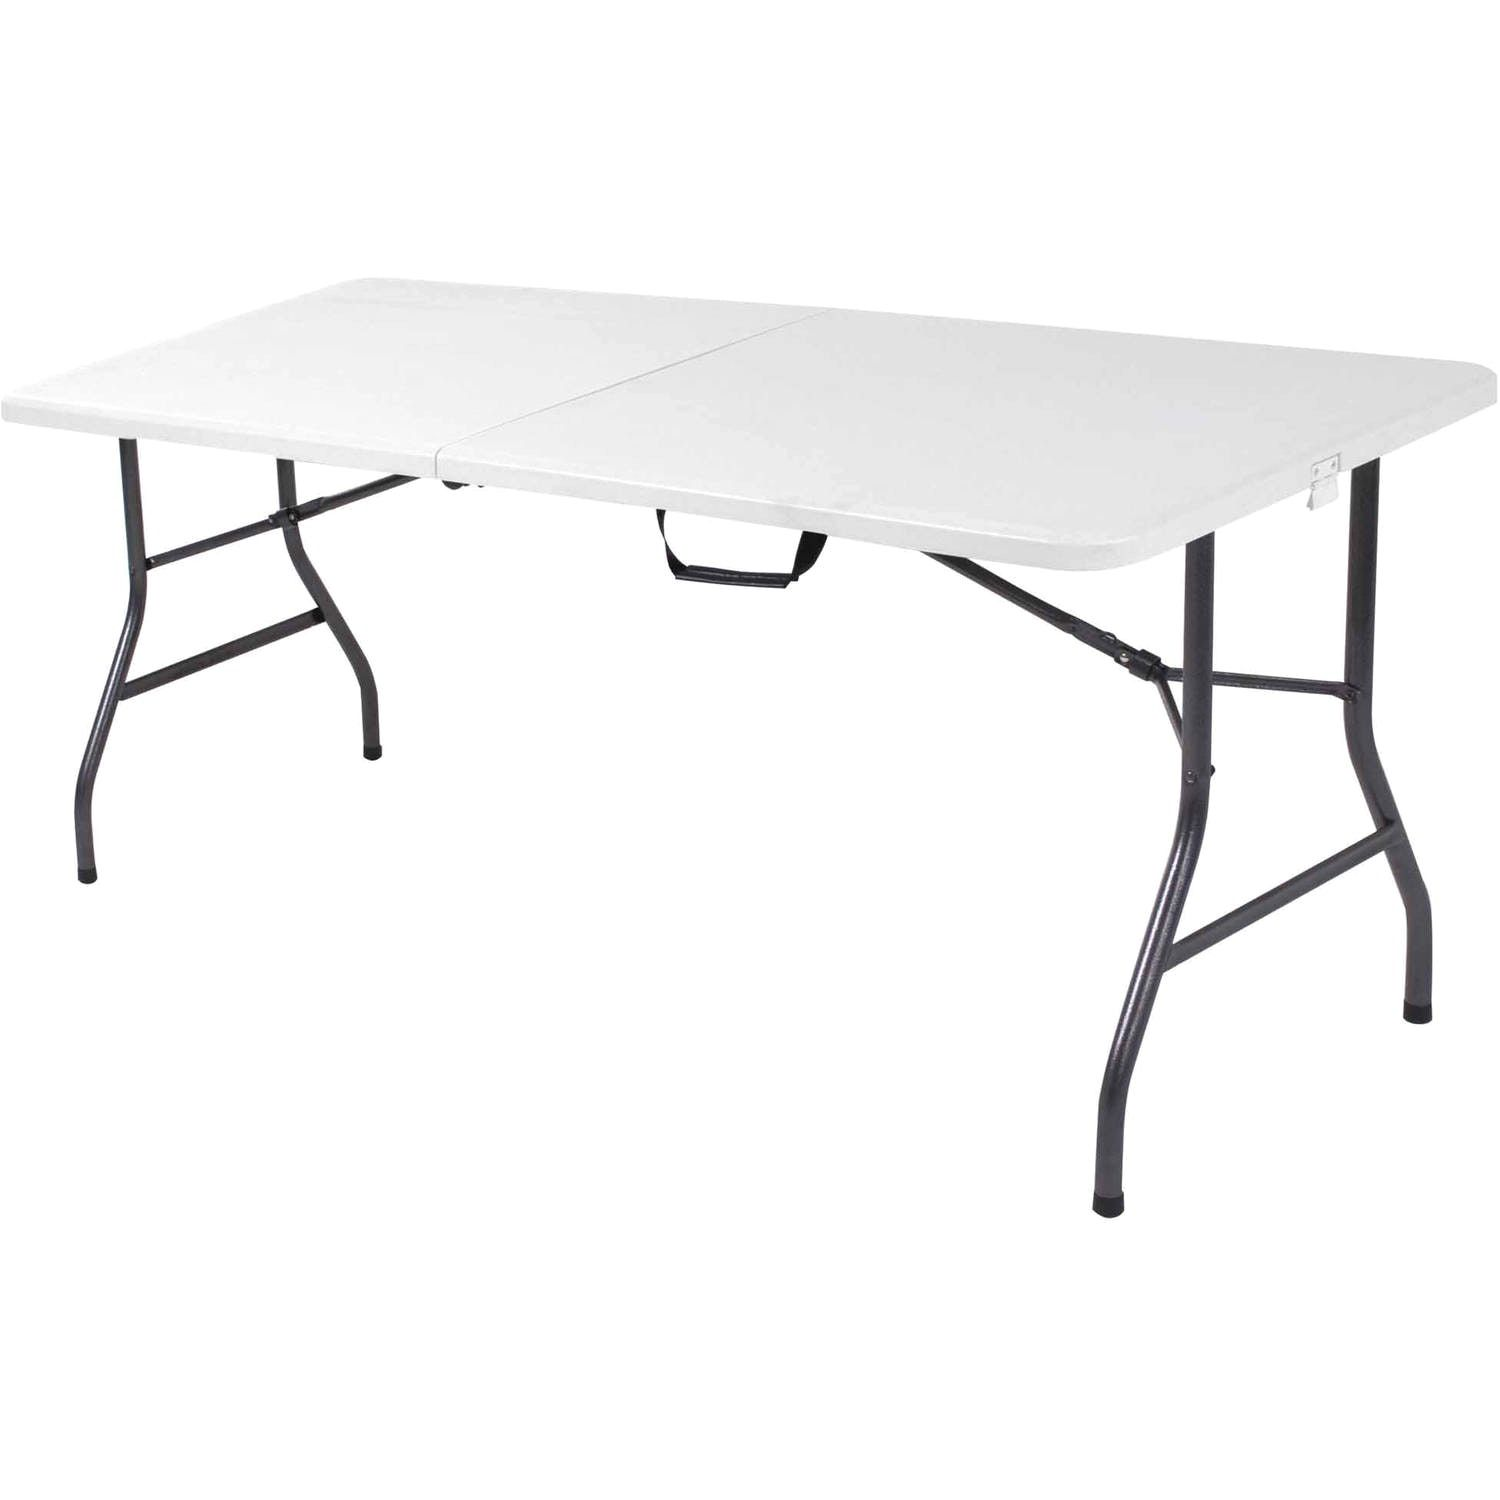 Charmant 100+ 60 Round Folding Table Costco   Best Bedroom Furniture Check More At  Http: